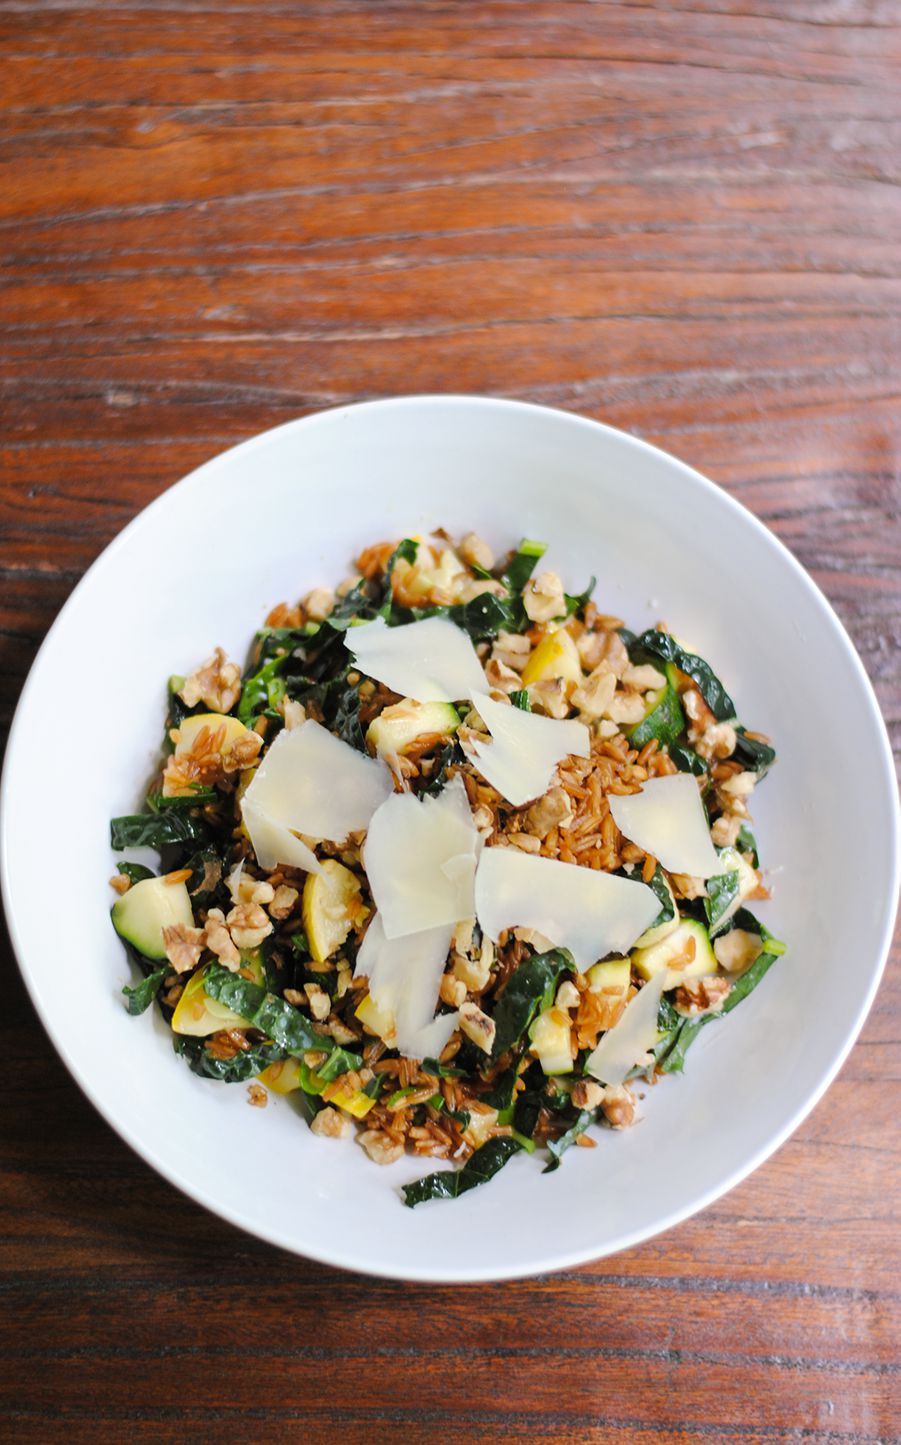 Farro salad with summer squash, kale and Parmesan